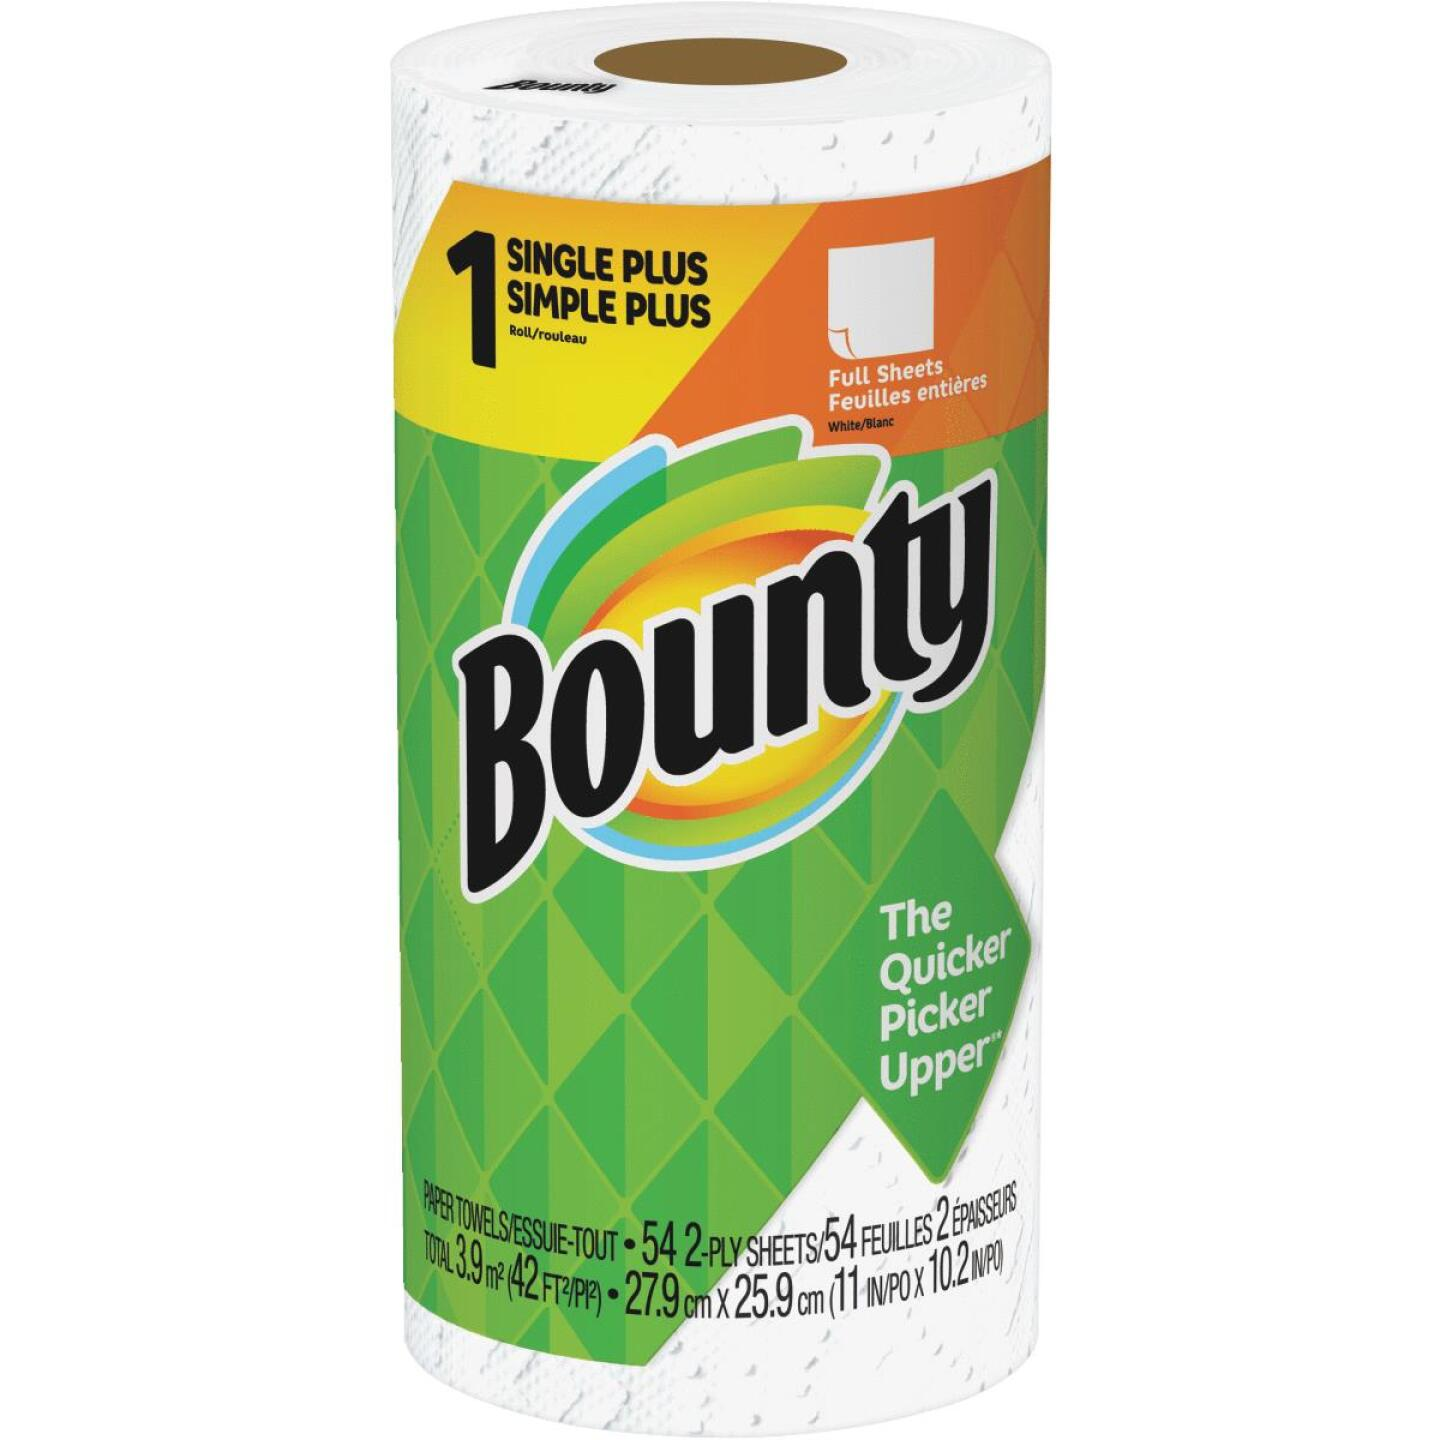 Bounty Single Plus Full Sheet Paper Towel (1-Roll) Image 1